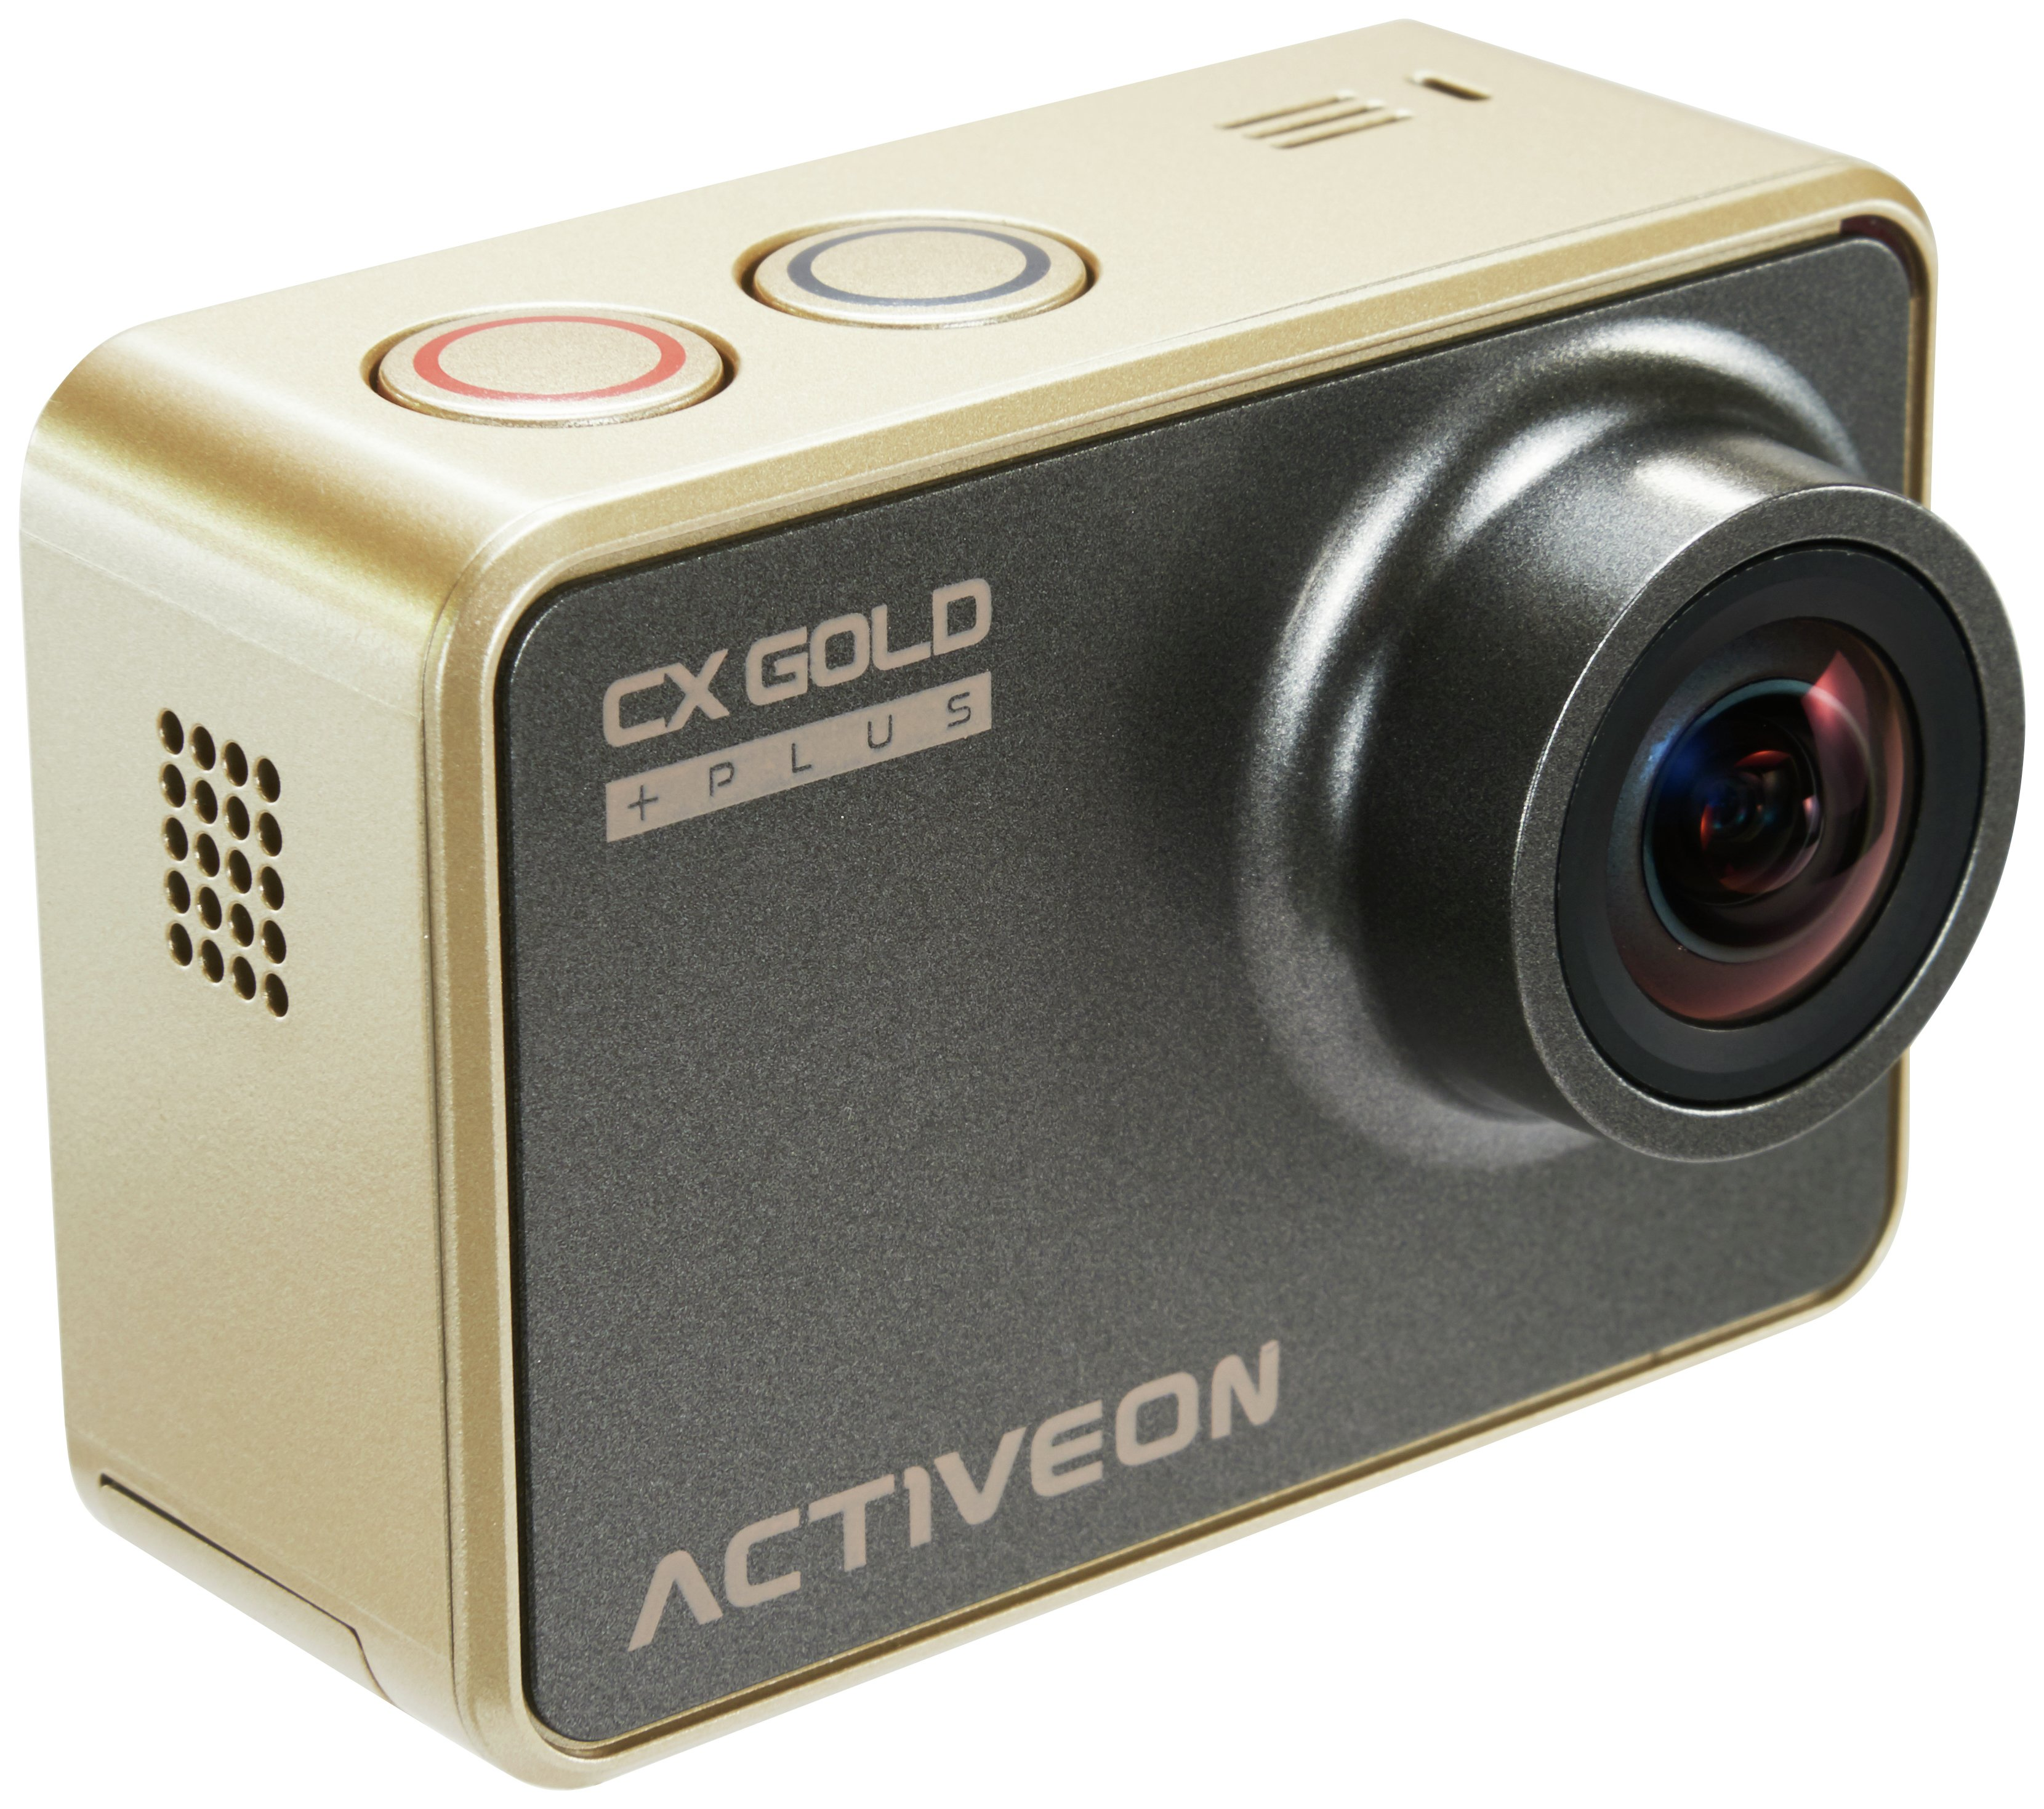 Image of Activeon XG - Action Camera with Solar Charging Station - Gold